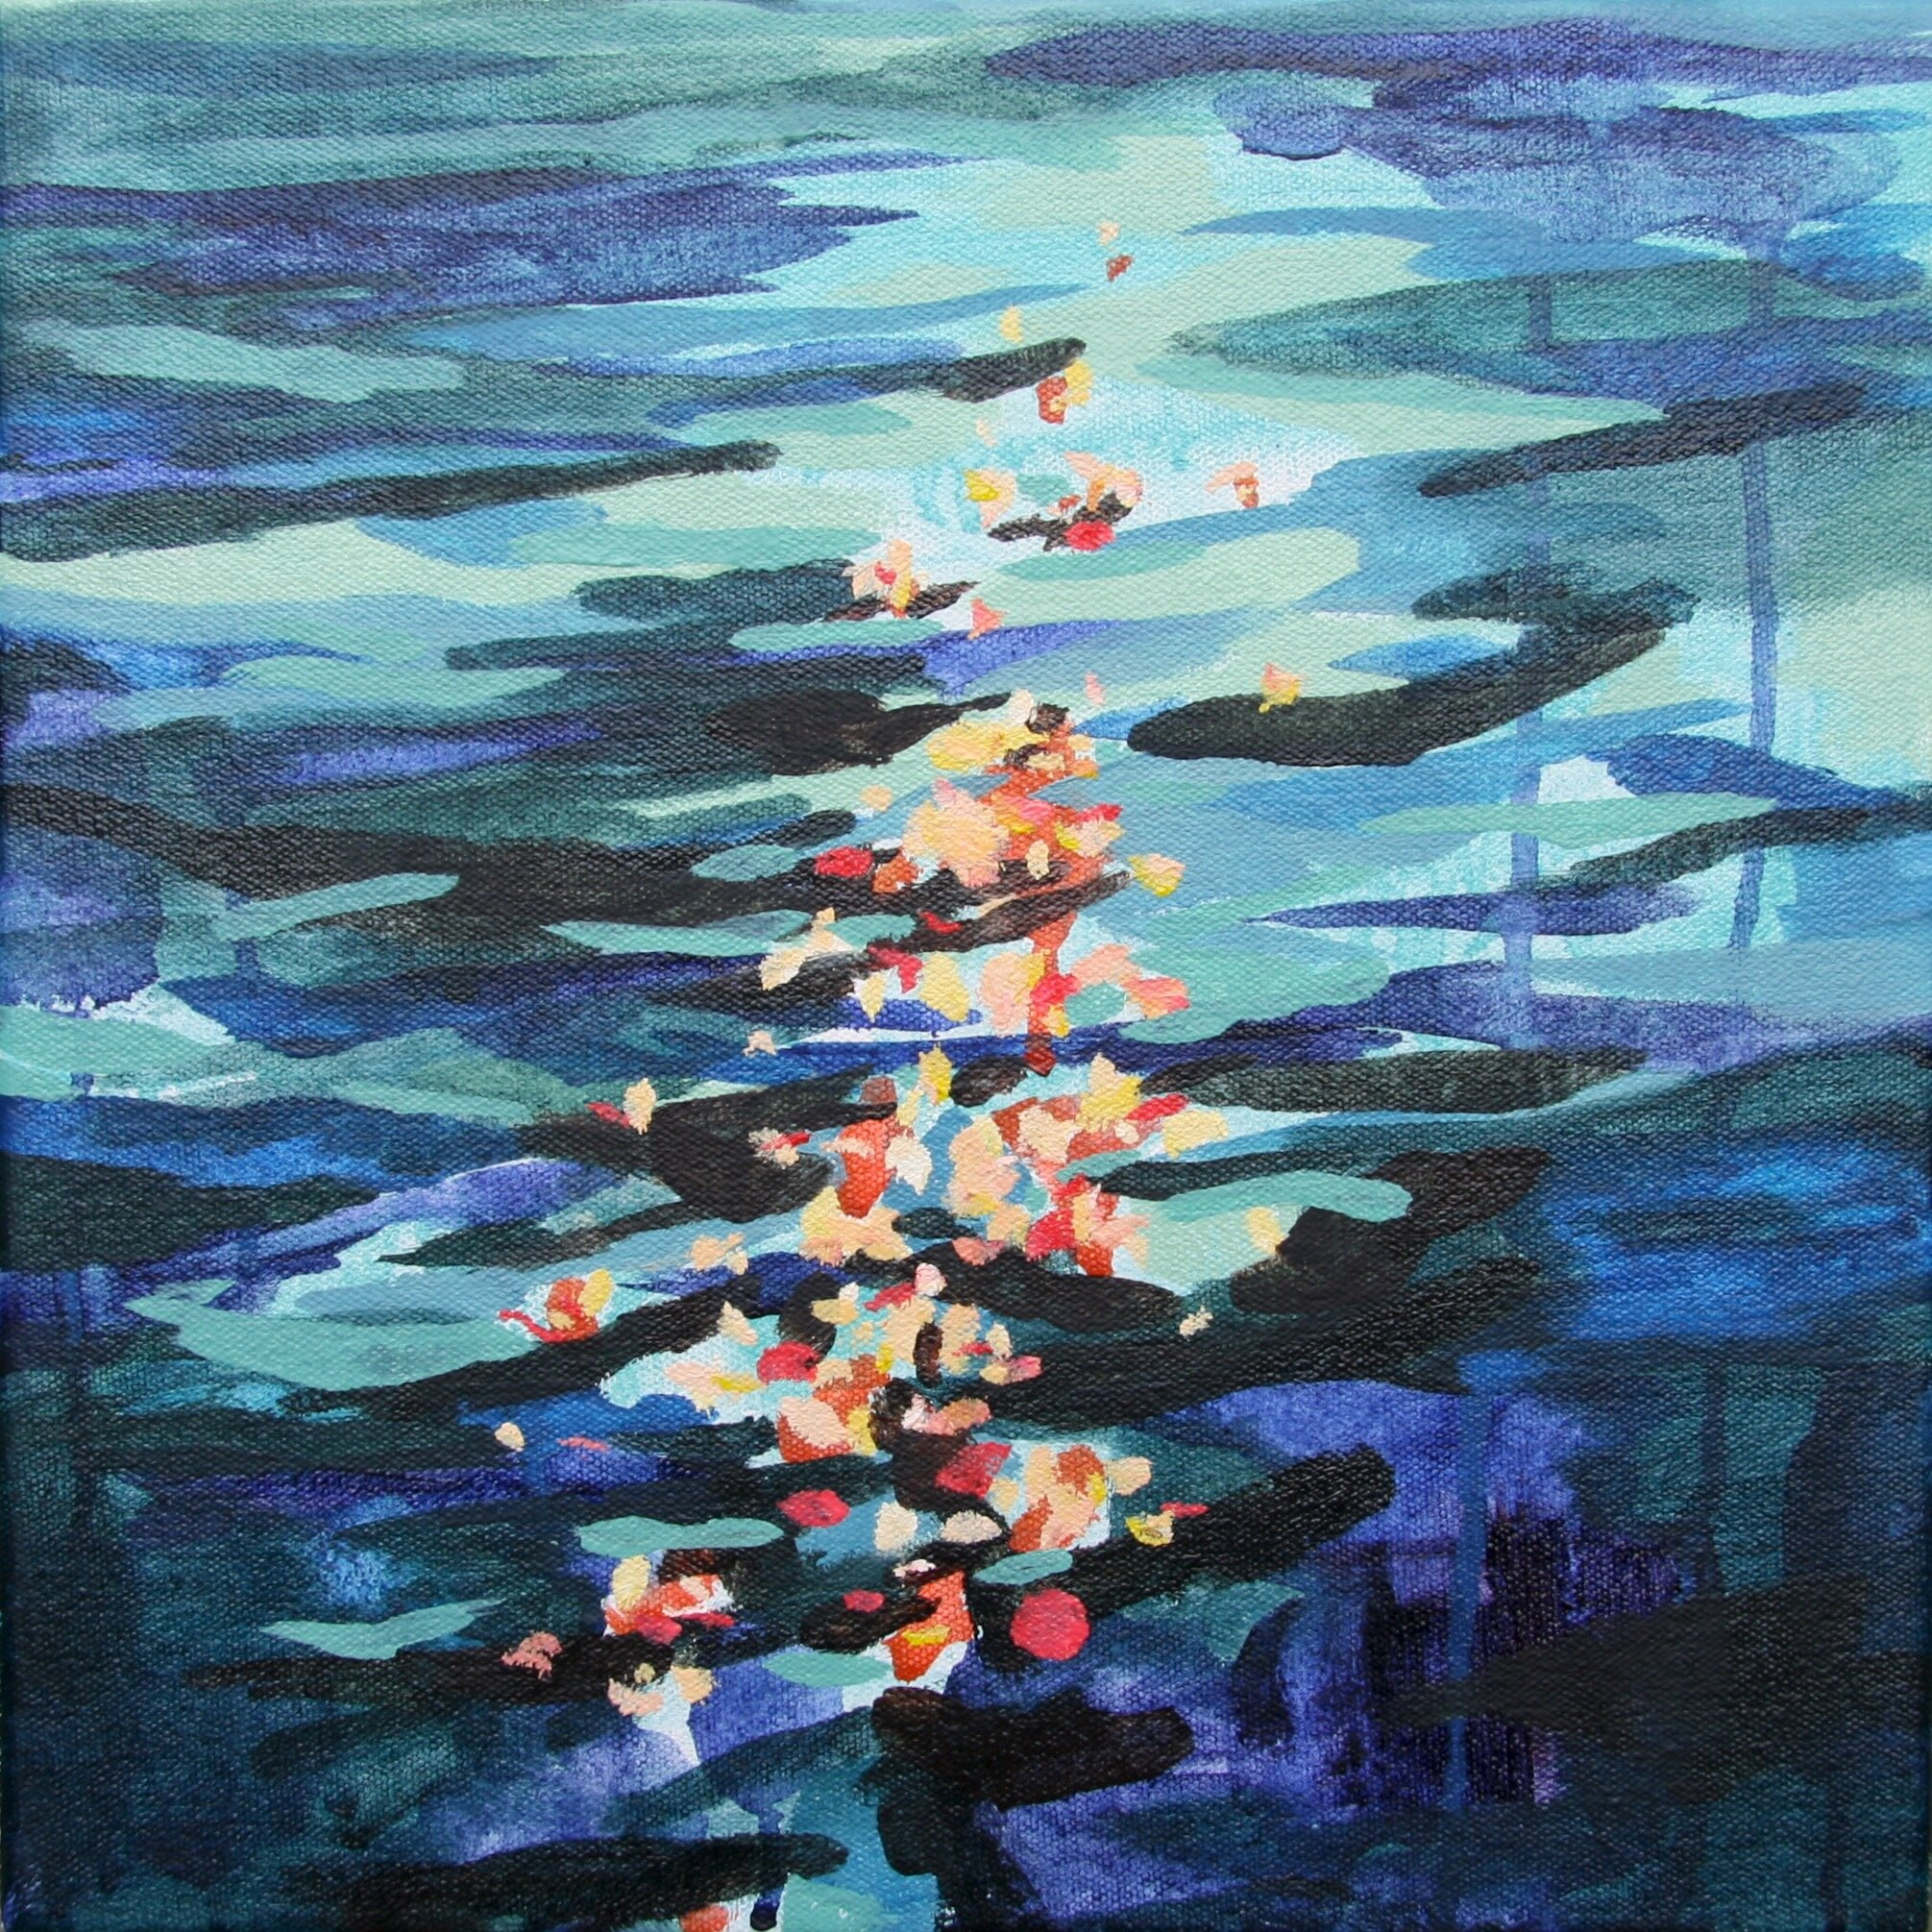 """'Float'  2014  12"""" x 12""""  water soluble oil on canvas  sold"""